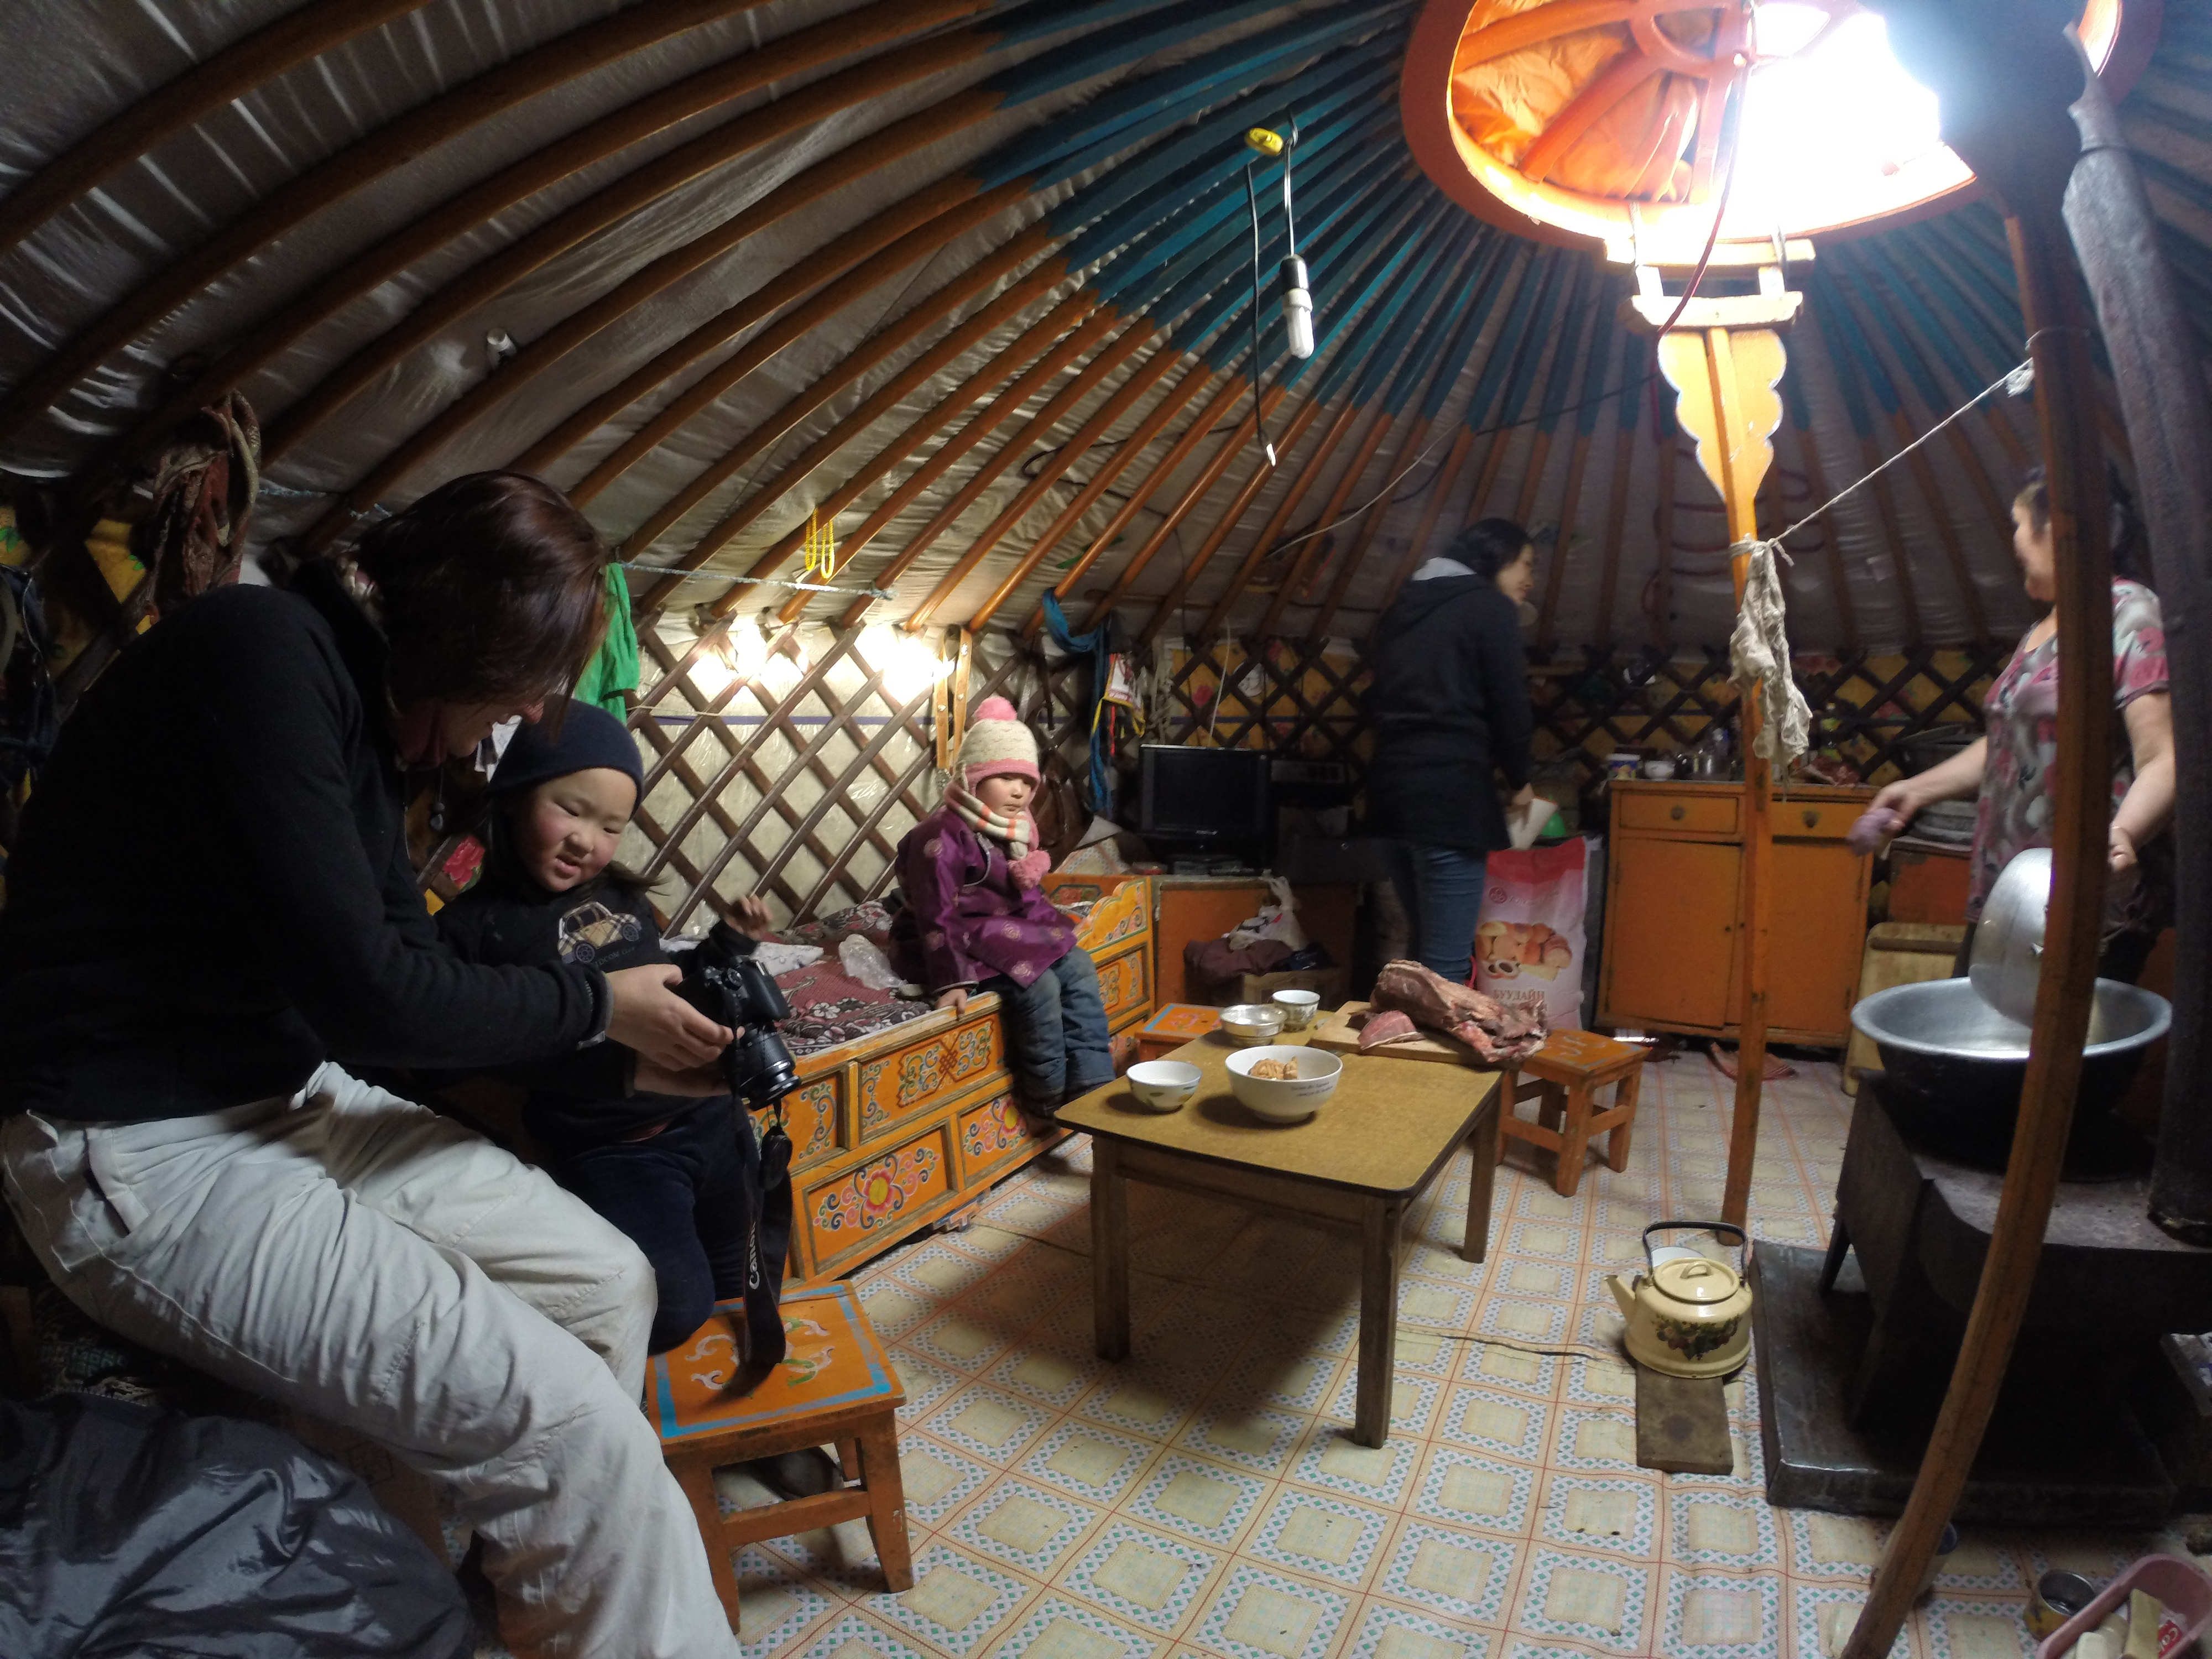 Family life inside a ger in Mongolia's wilds in the middle of winter.